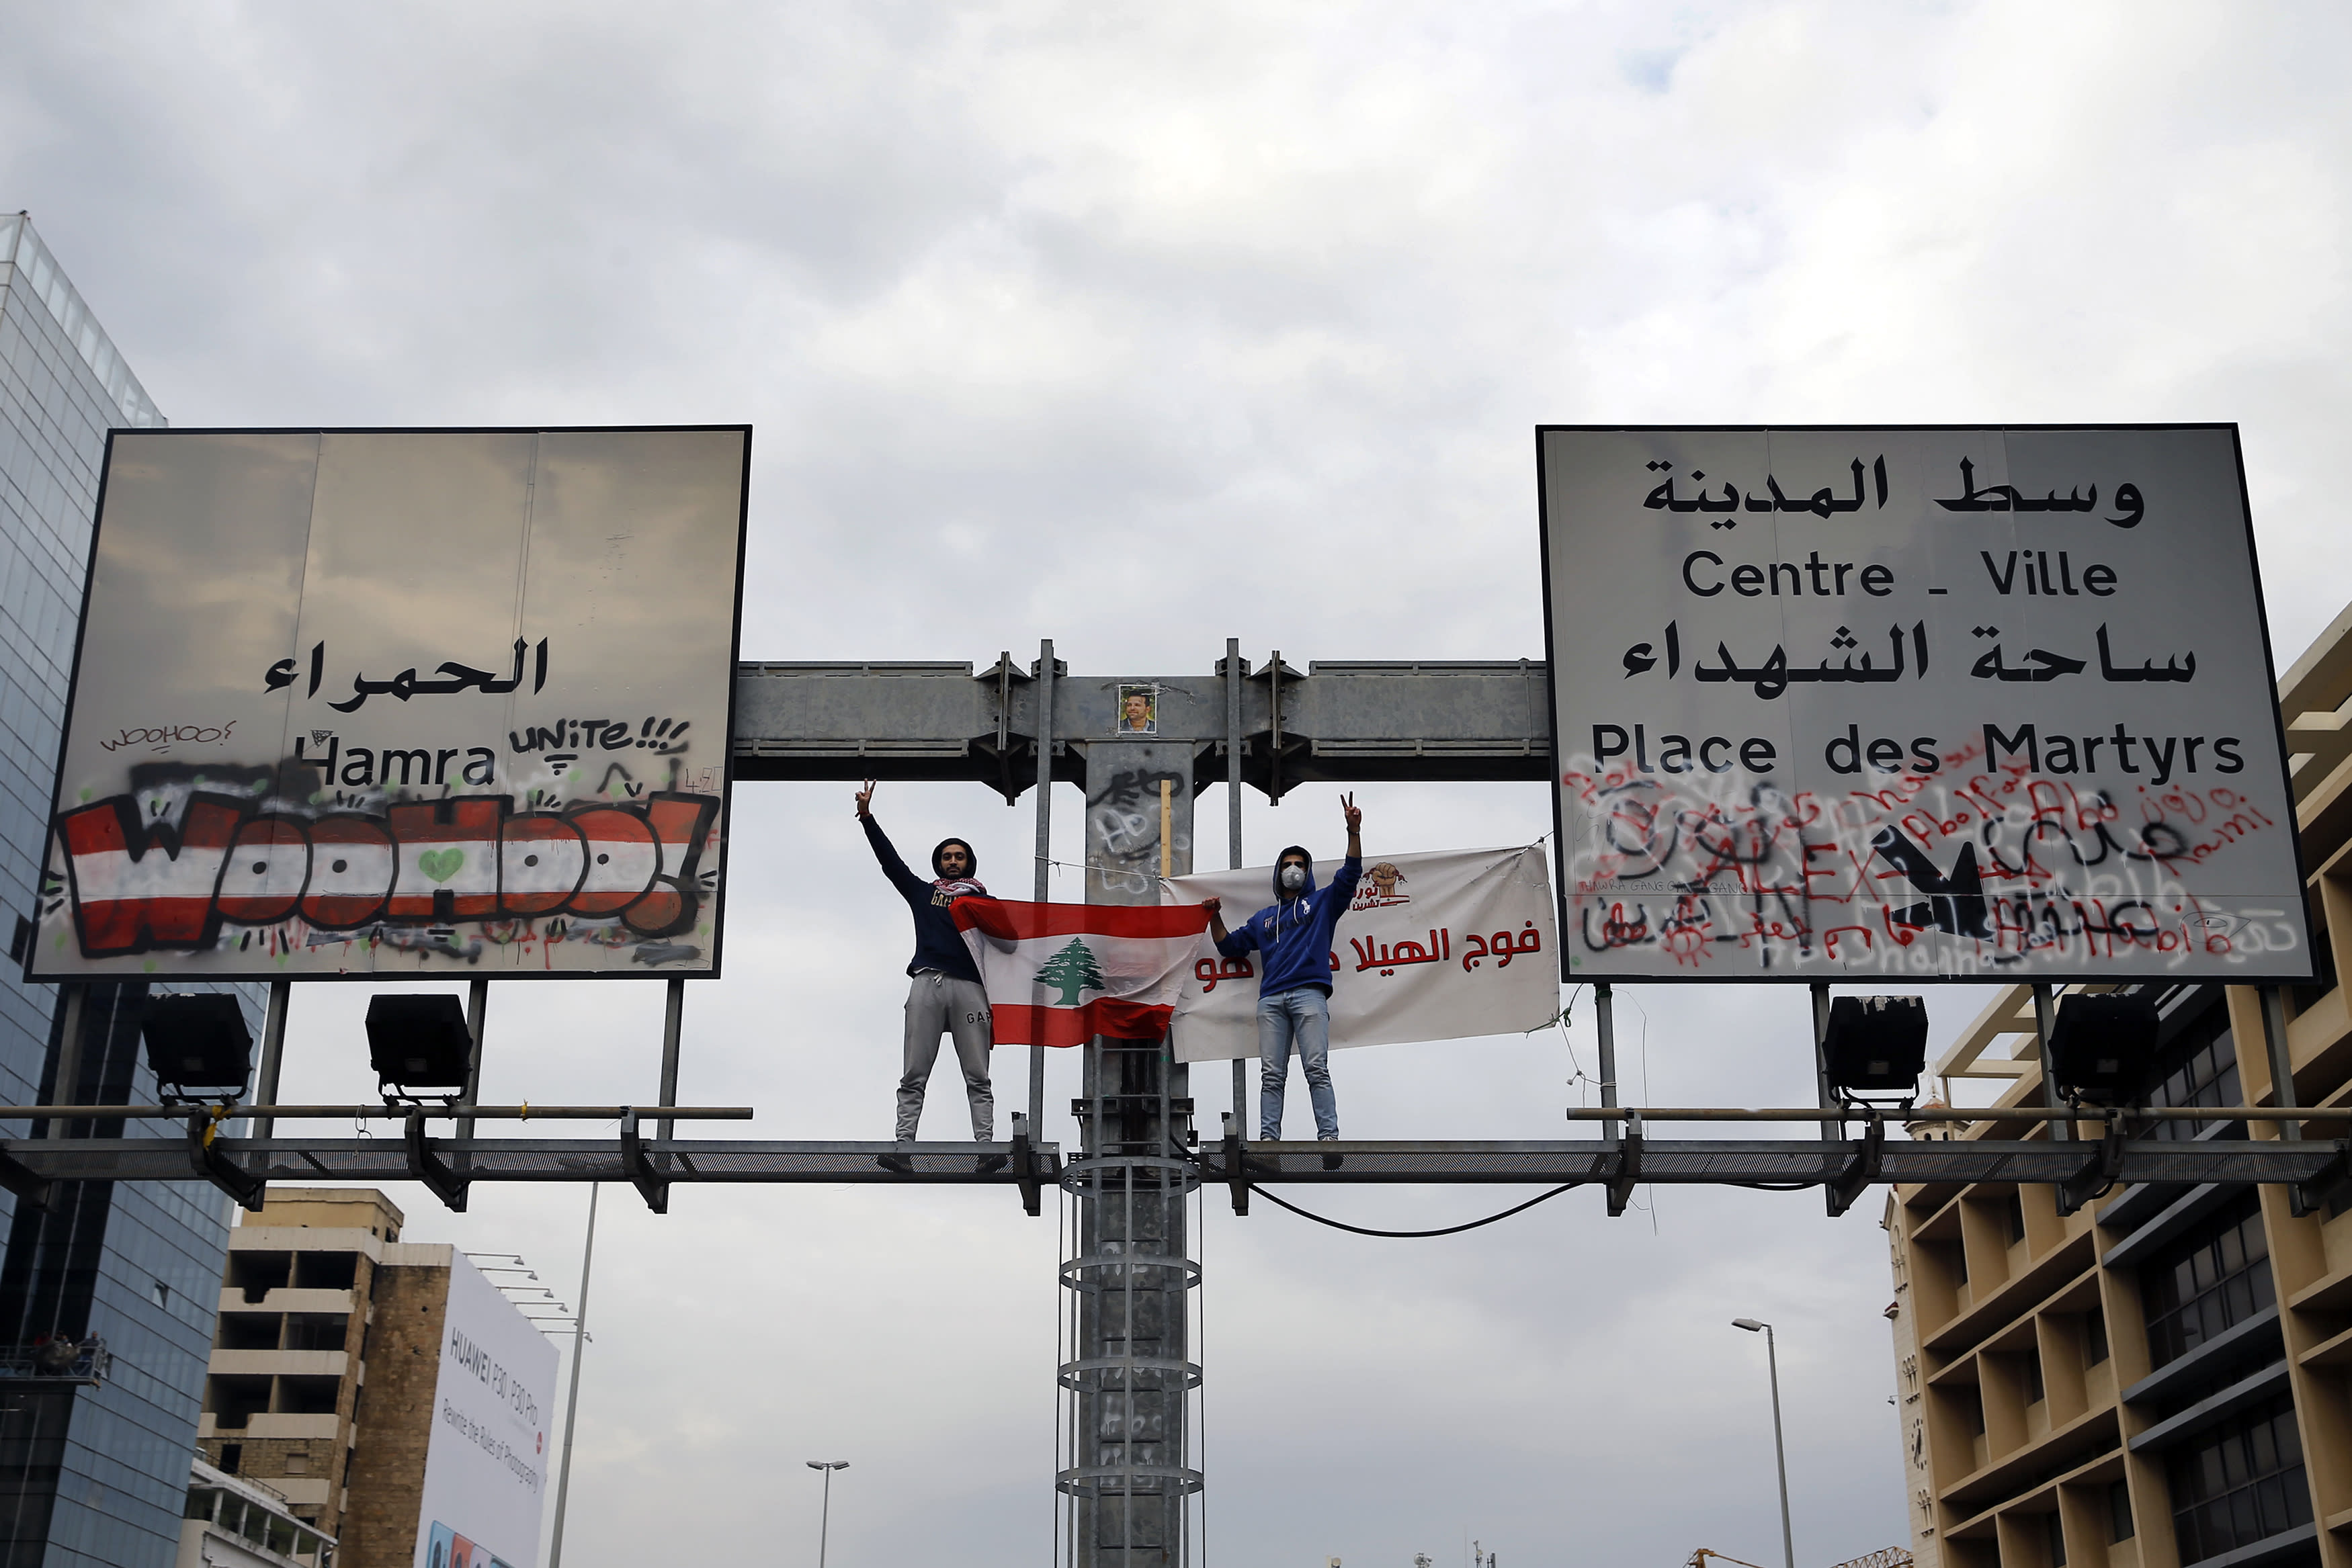 Anti-government protesters stand atop a road sign and flash the victory sign as others block a main highway in Beirut, Lebanon, Friday, Jan. 17, 2020. Protesters closed major roads in the capital Beirut and around wide parts of Lebanon paralyzing the country as the political crisis over the formation of a new government worsens. (AP Photo/Bilal Hussein)